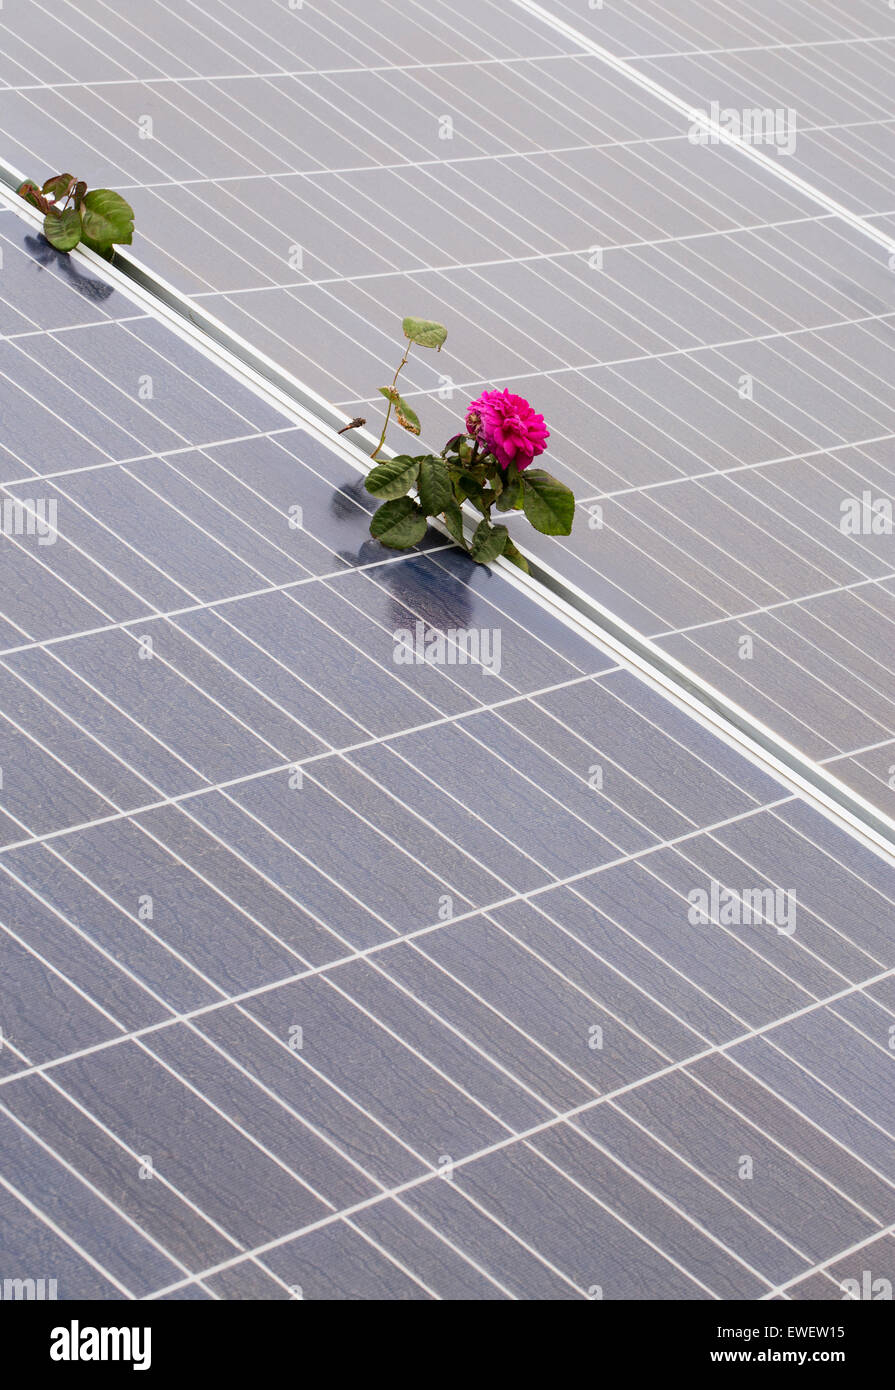 Rose growing between solar panels at Russian River Rose Company in Healdsburg, Sonoma County, California, USA North - Stock Image